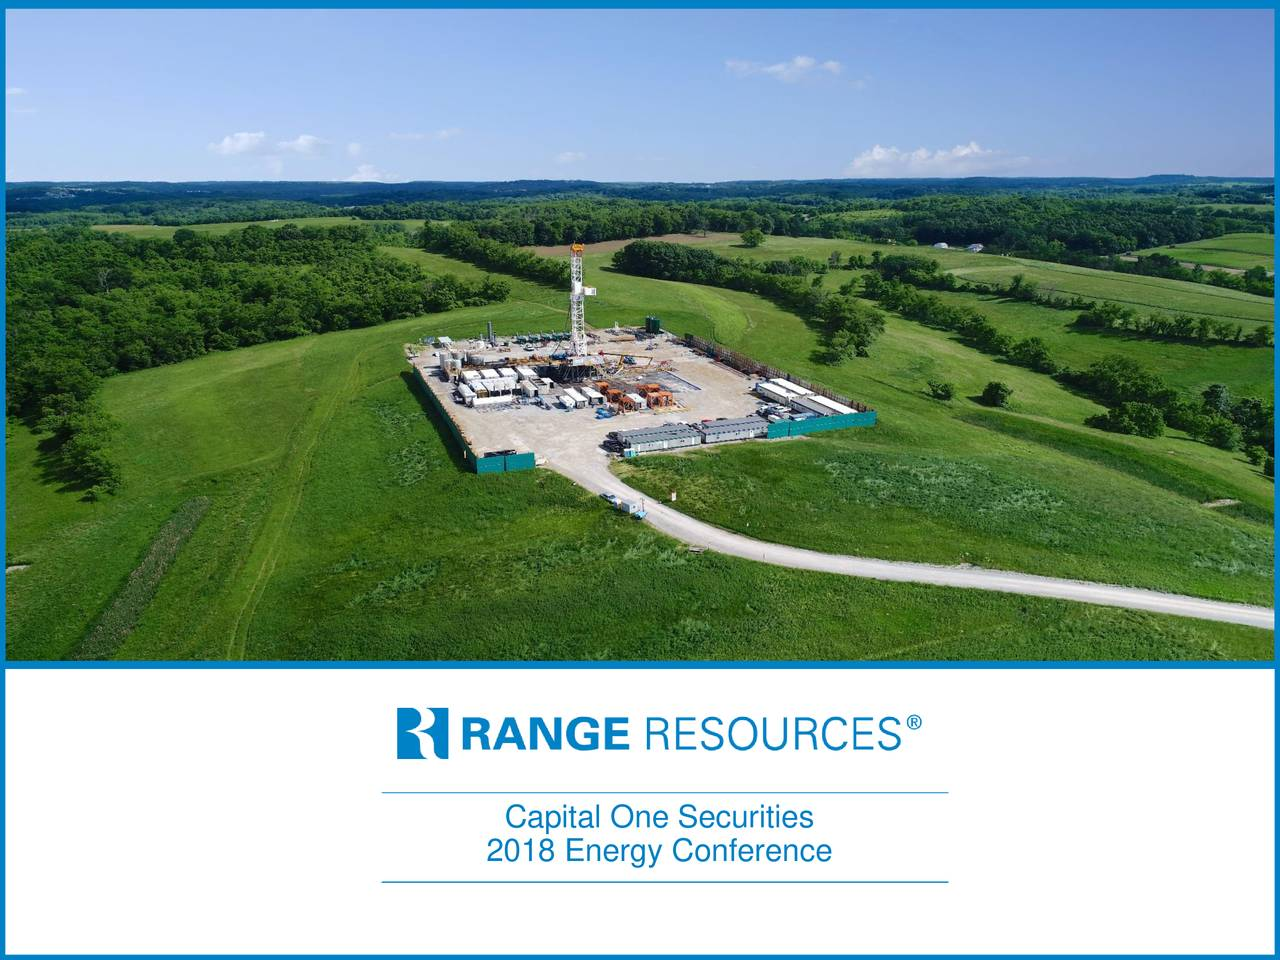 2018 Energy Conference